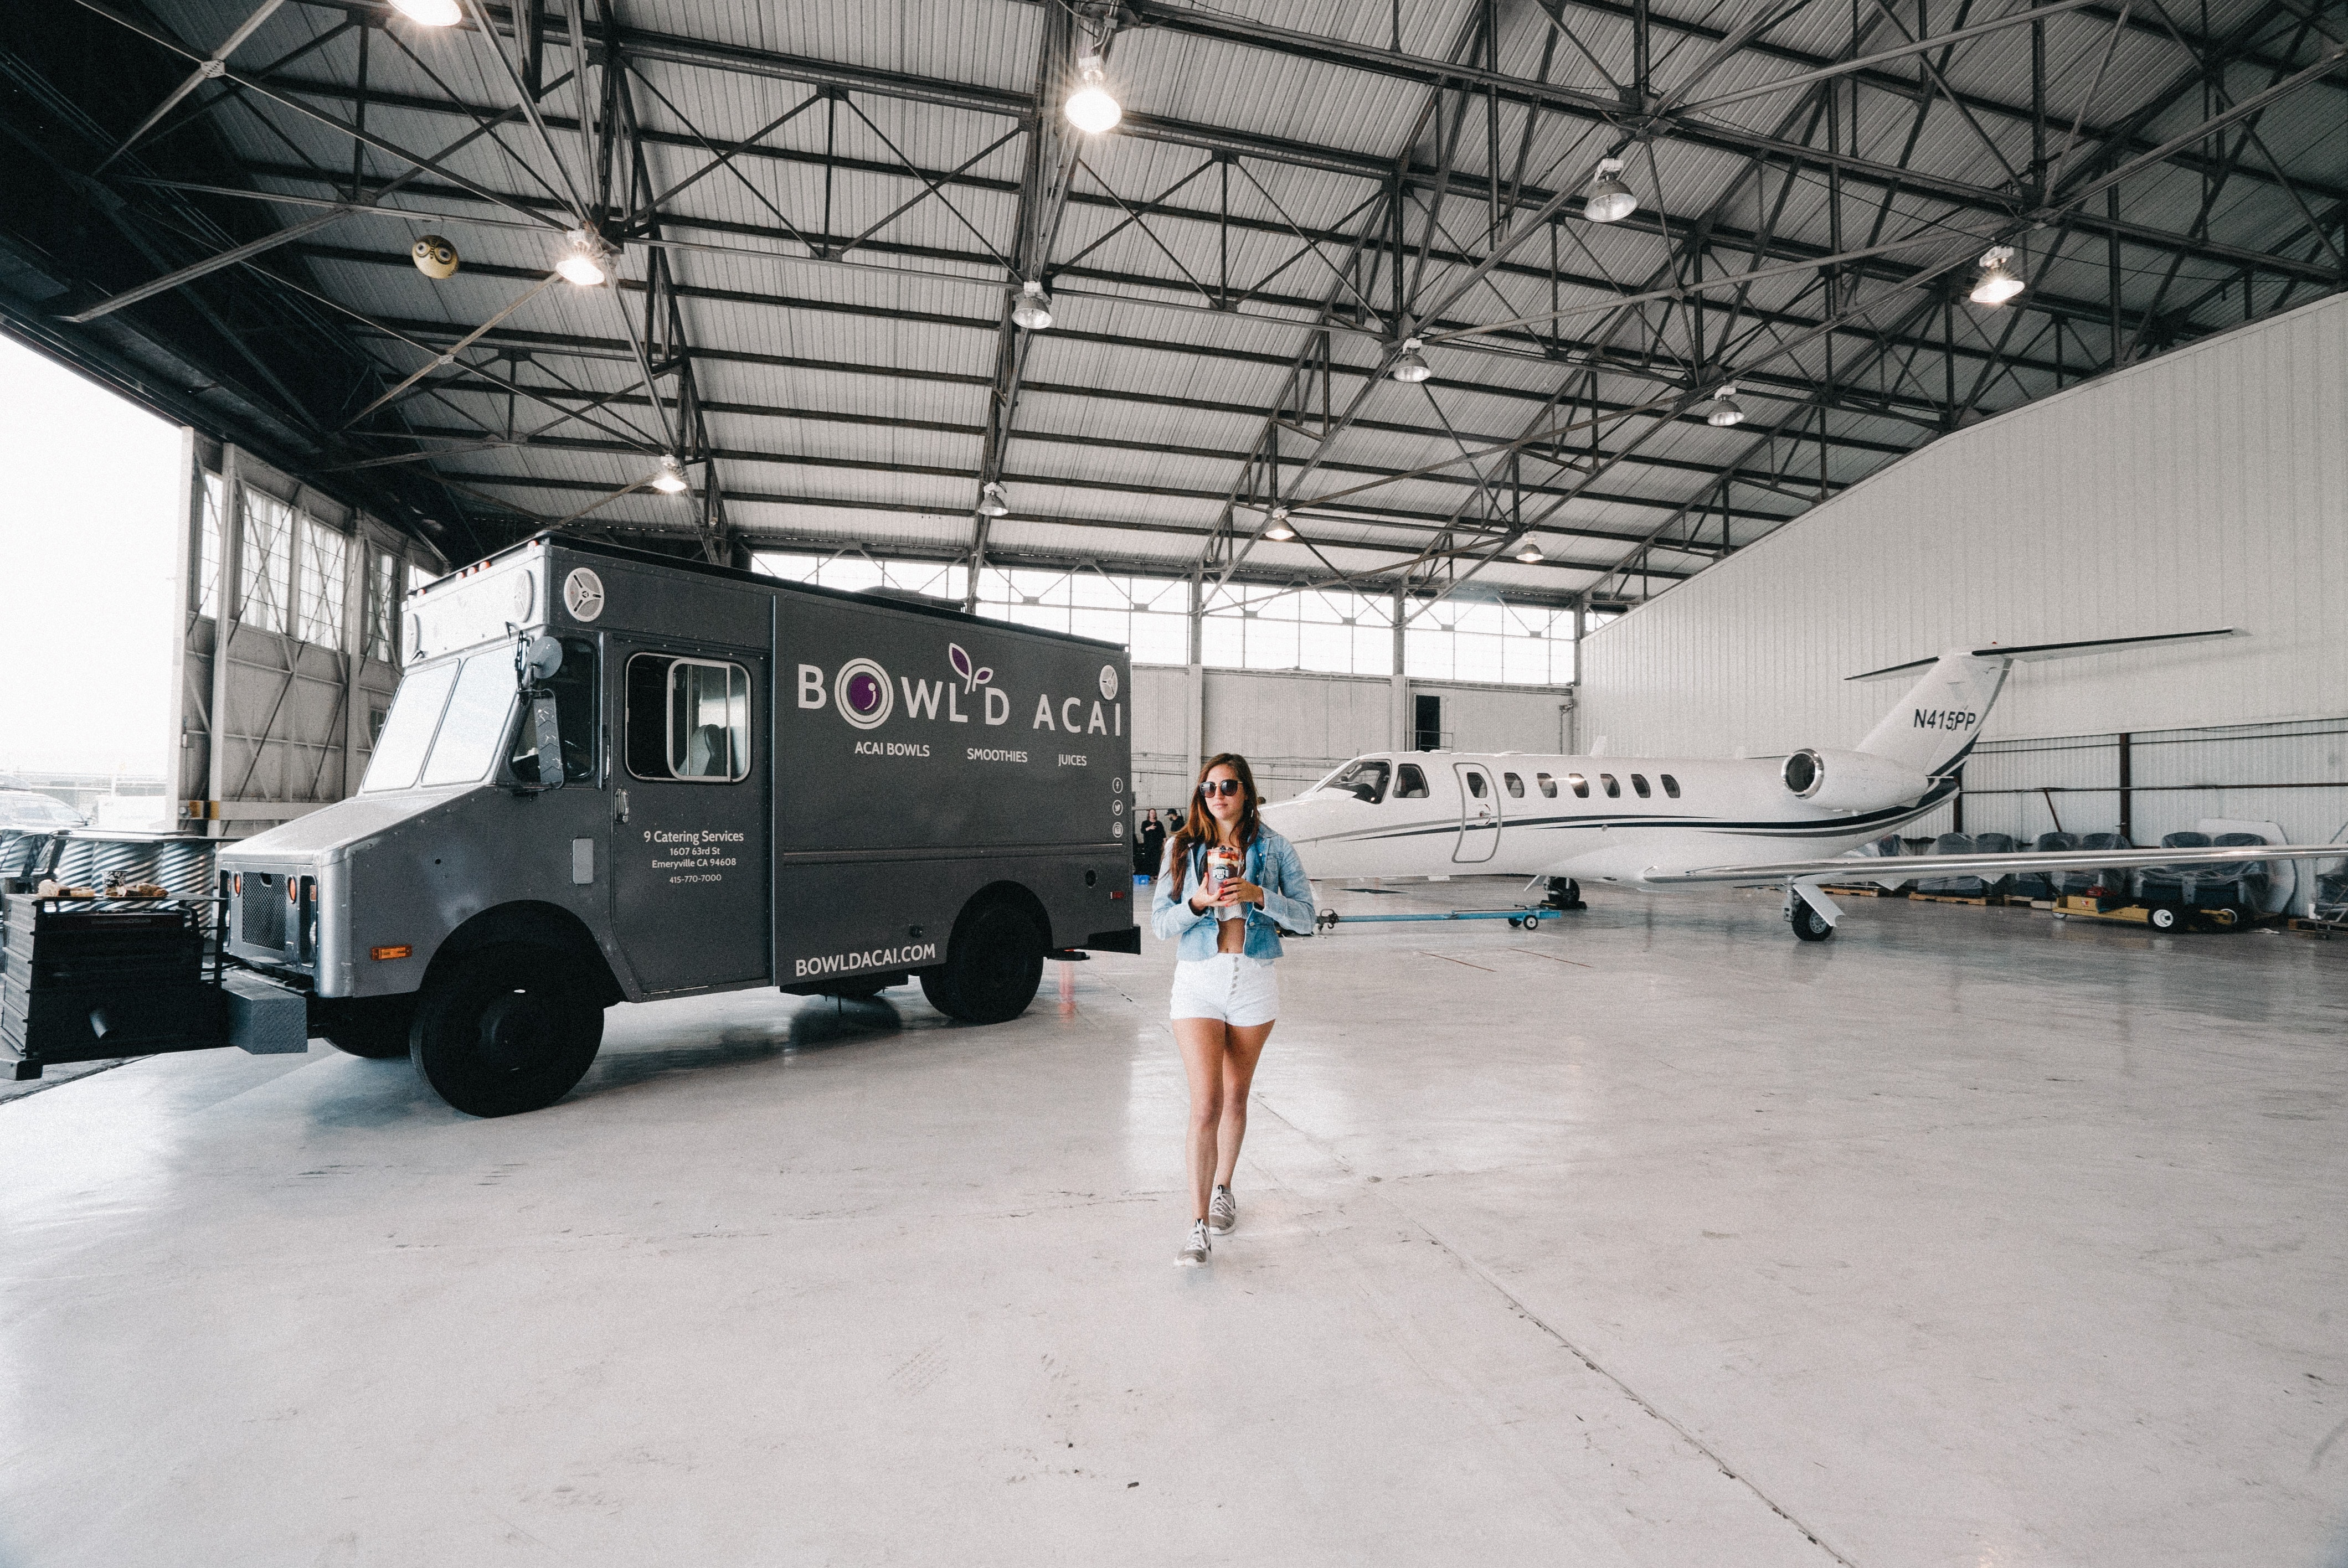 woman standing near white plane and vehicle